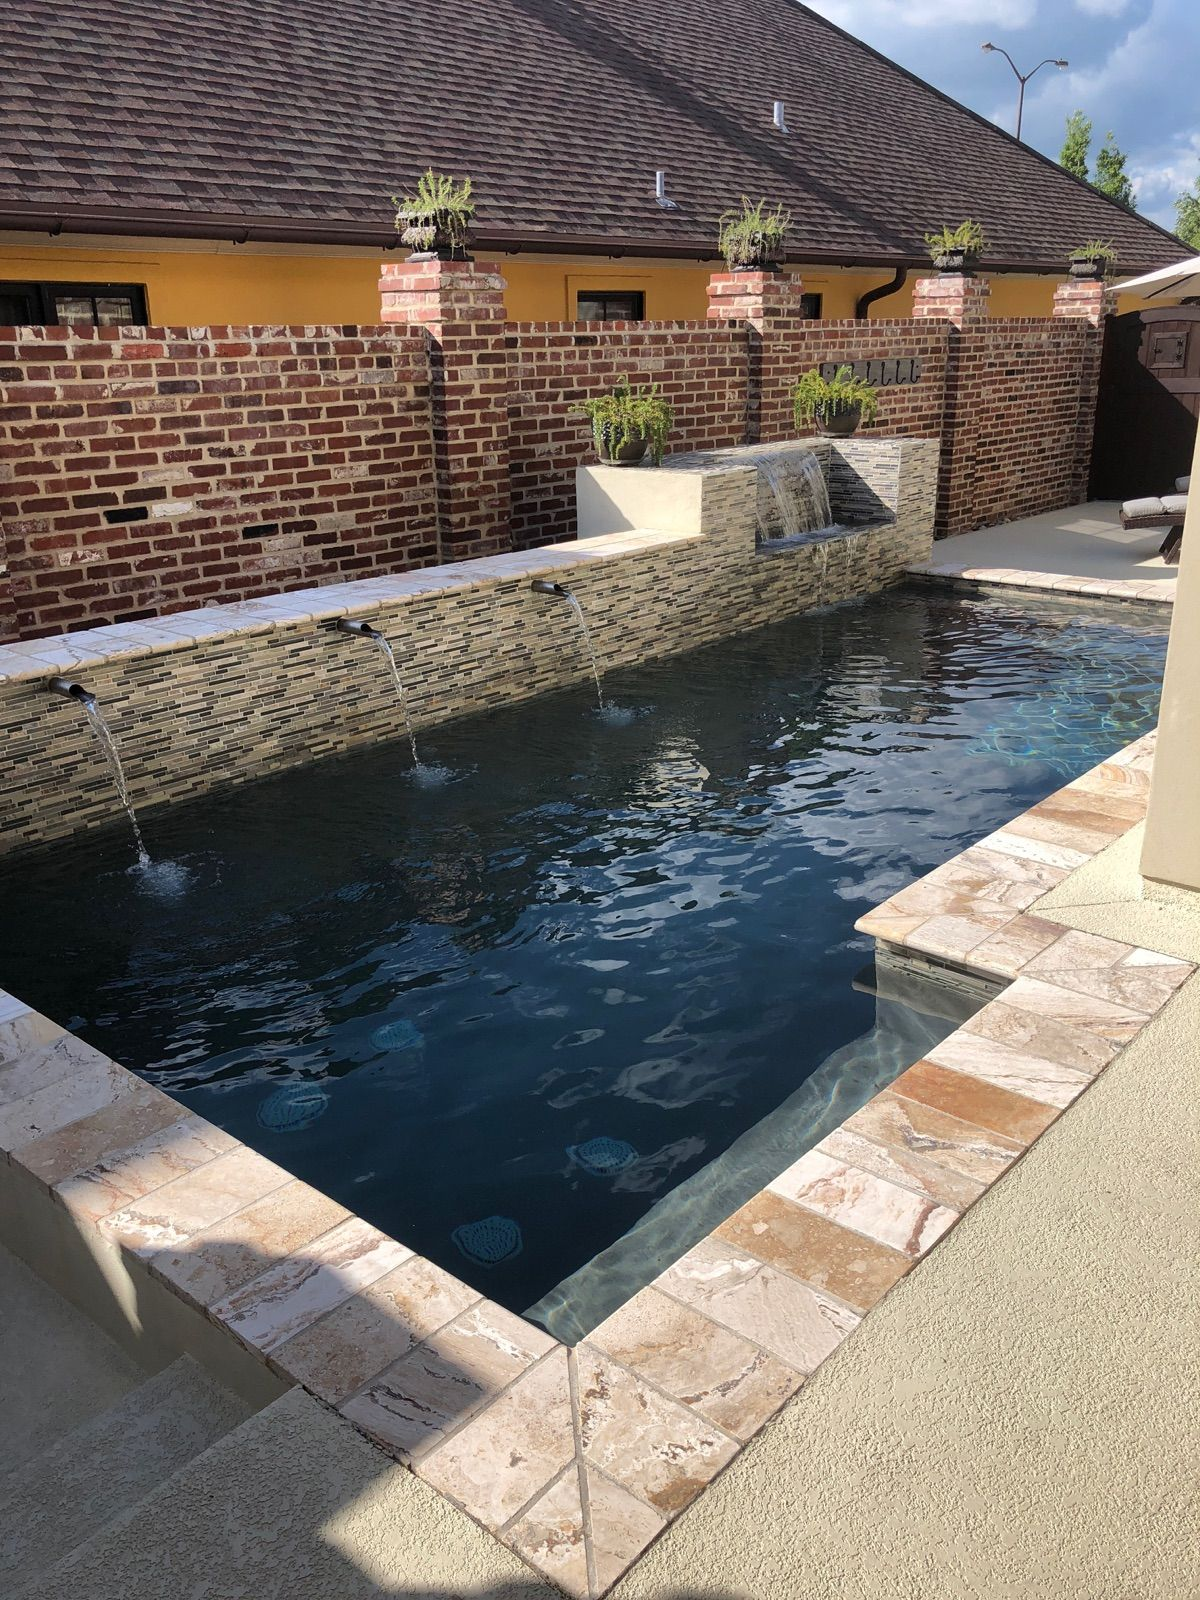 Beautiful Pool Complete With Waterfall And Travertine Coping Call Today To Get An Estimate Backyard Vacation Swimming Pool House Swimming Pools